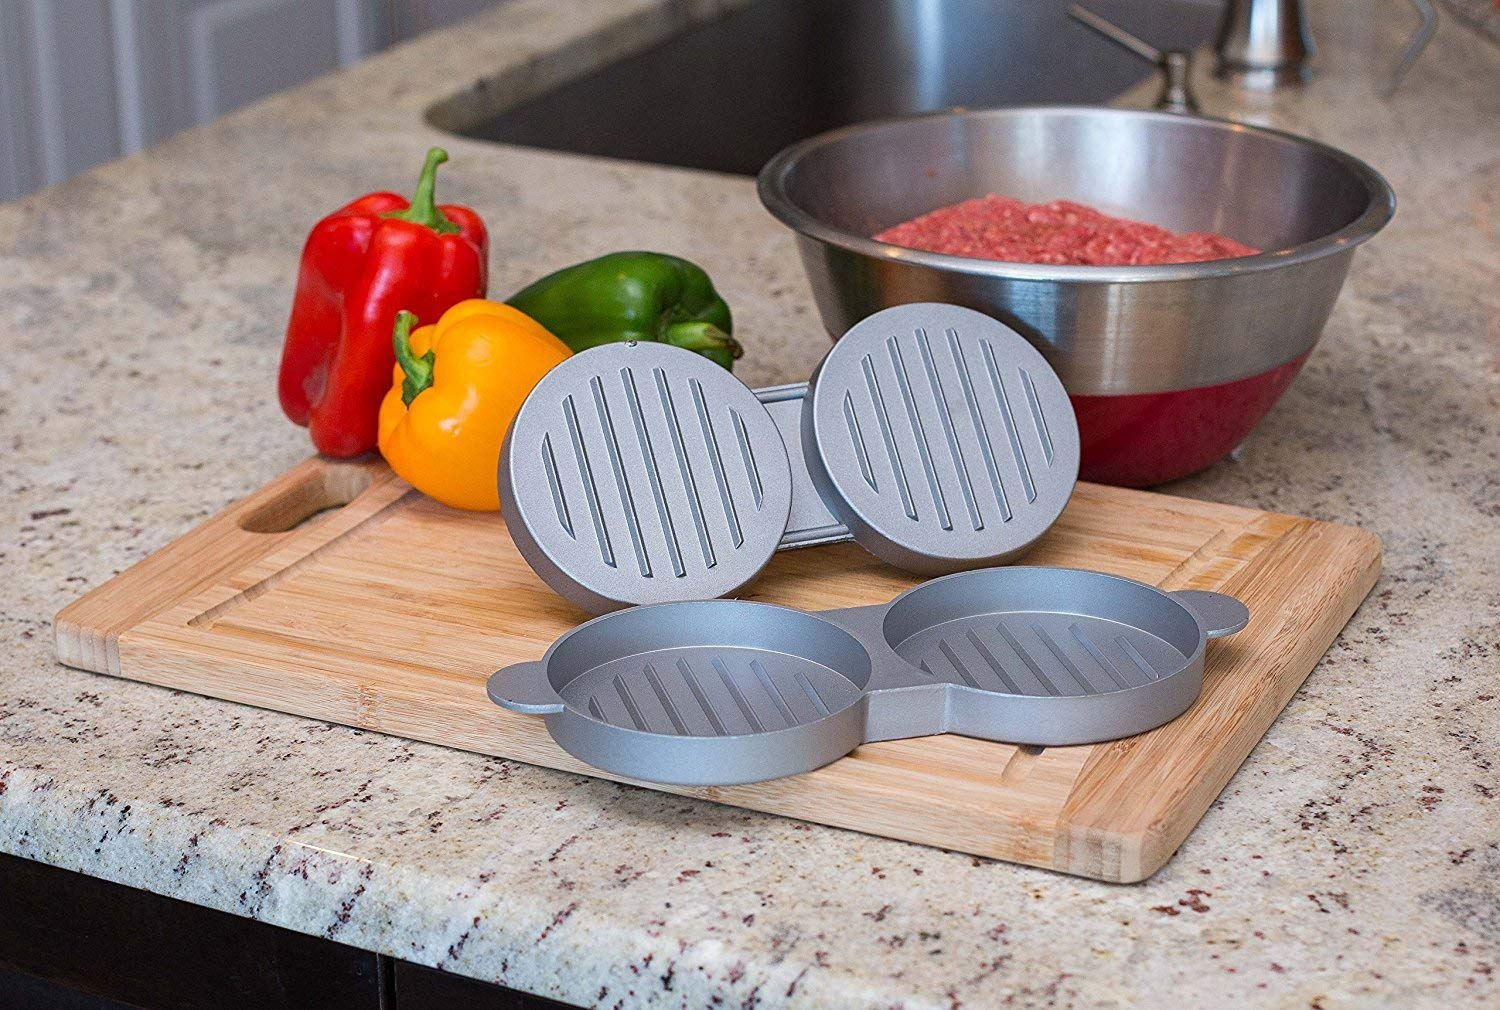 CLSstar Best Double Burger News on The Internet,Heavy Duty Non-Stick Burger Patty Manufacturer Perfect Burger Mould Ideal for BBQ Basic Kitchen and BBQ Accessories